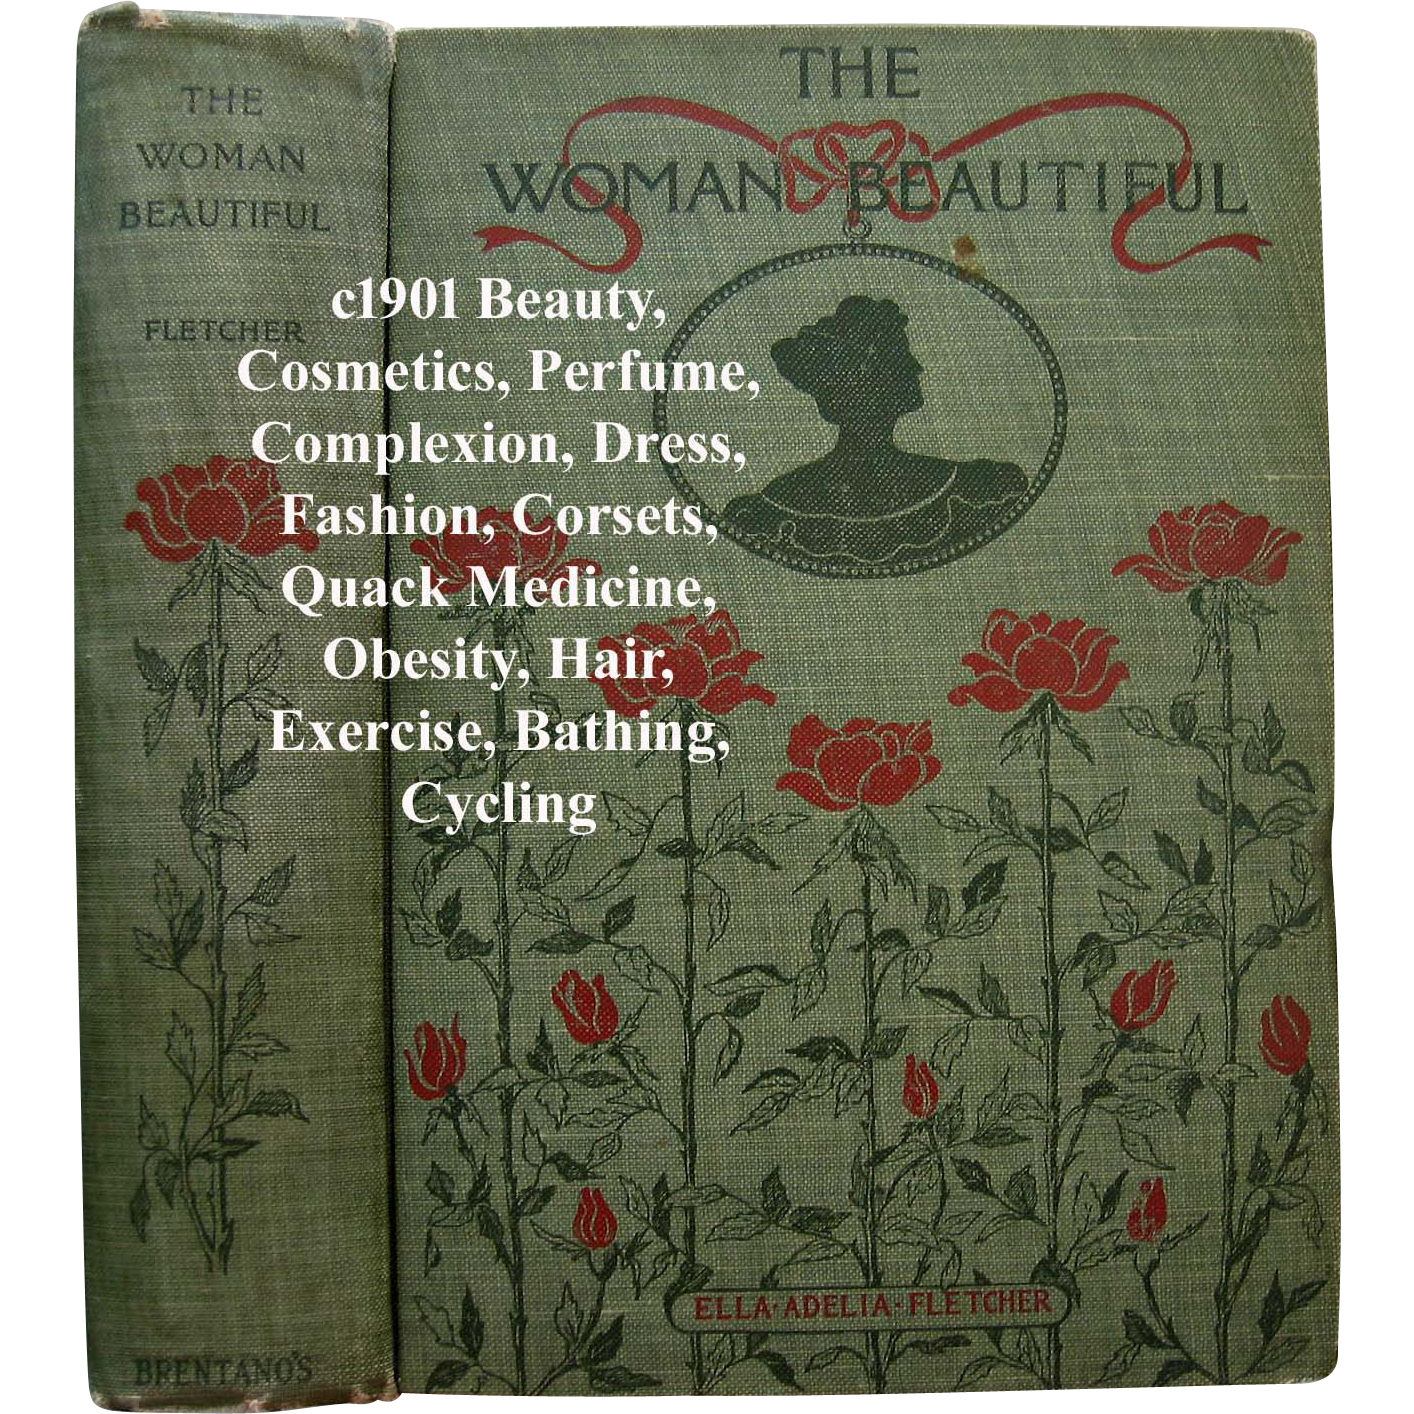 The Woman Beautiful Antique Book Fletcher Beauty Etiquette Cosmetic Perfume Recipes Corset Complexion Hair Exercise Bathing Dress Fashion Cosmetics Quack Medicine Pharmacy Formula Diet Obesity